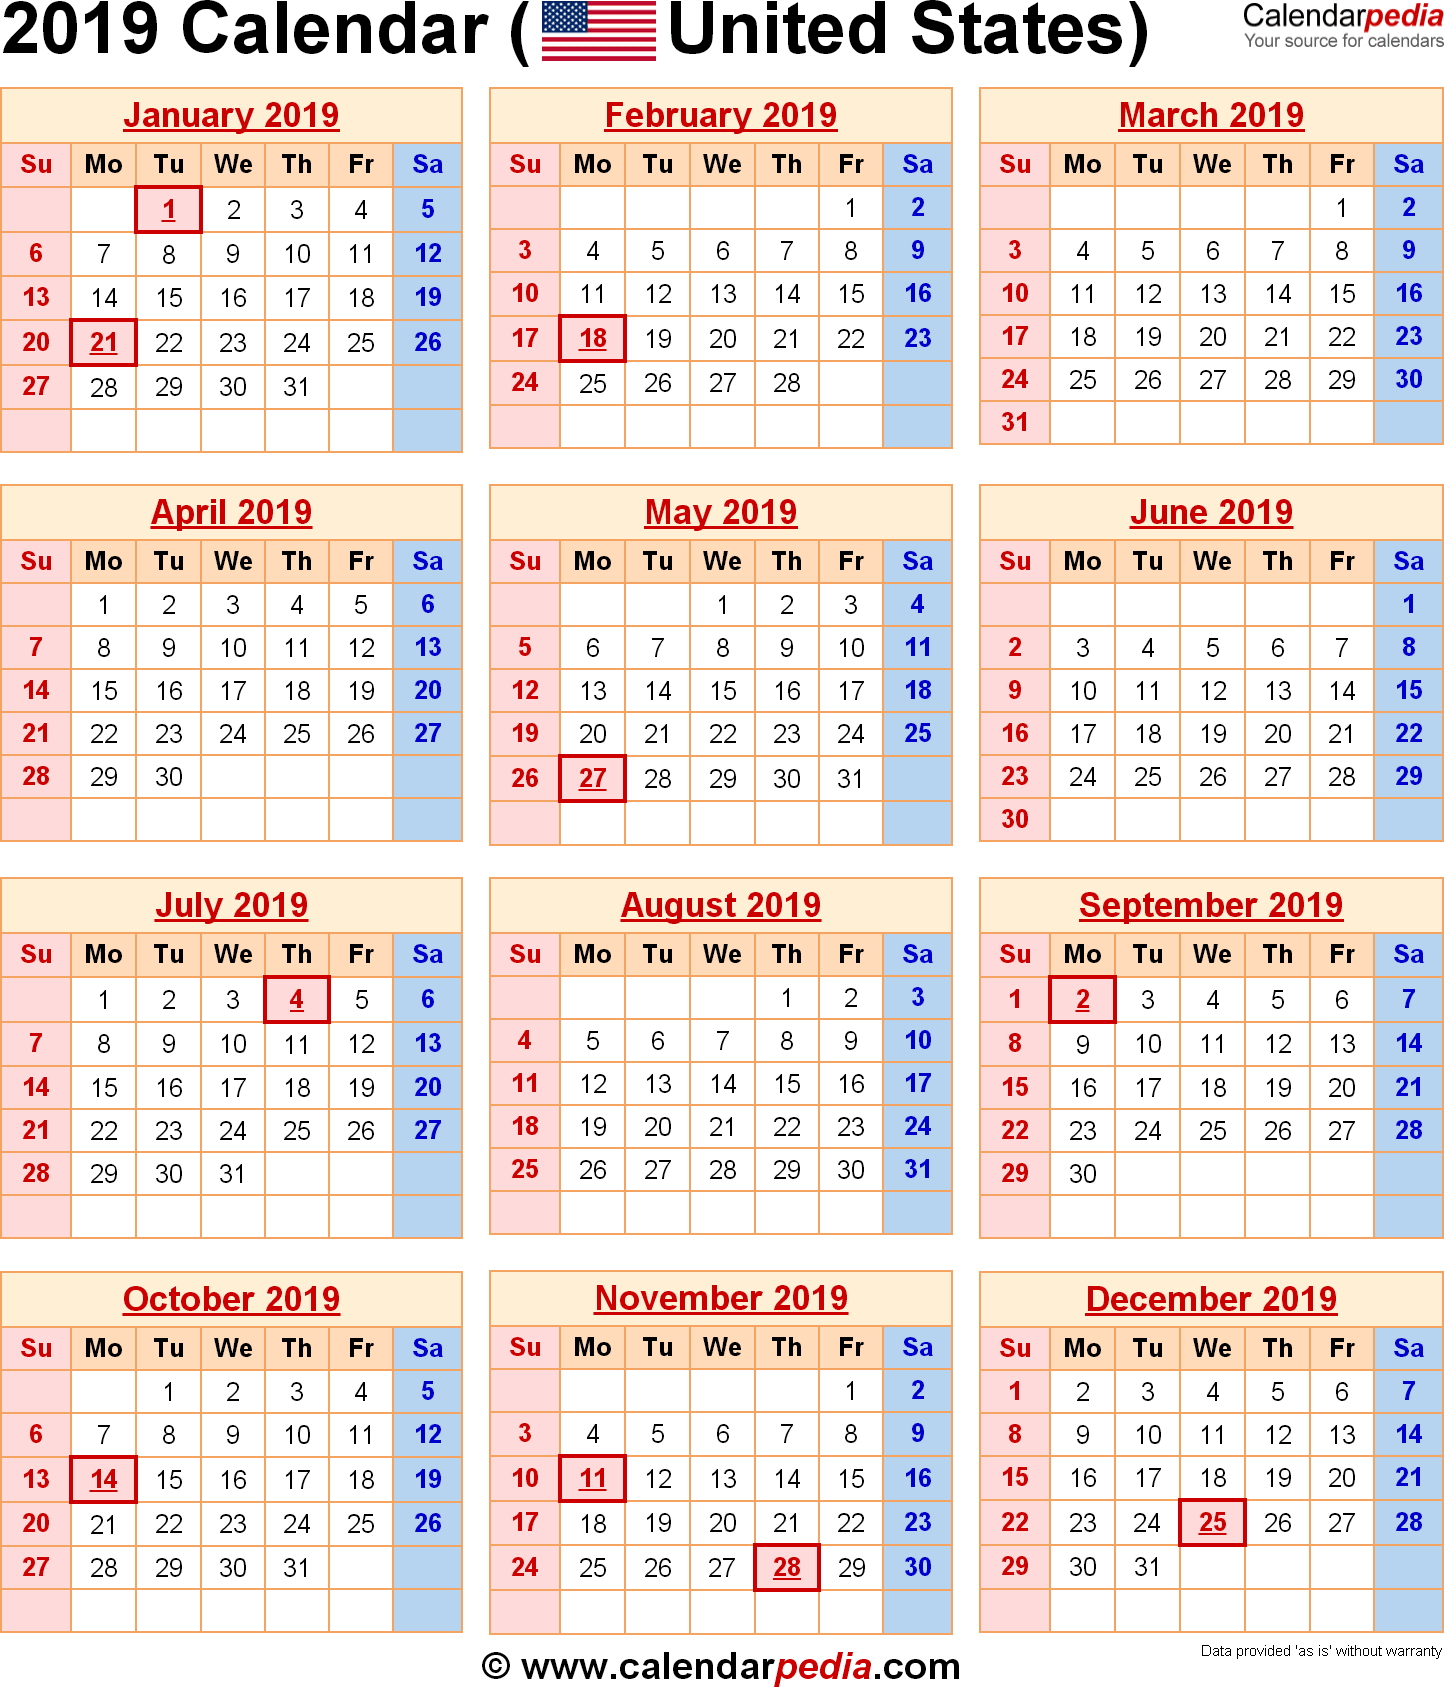 January 2019 Calendar Usa Holidays - Free Download | Yearly